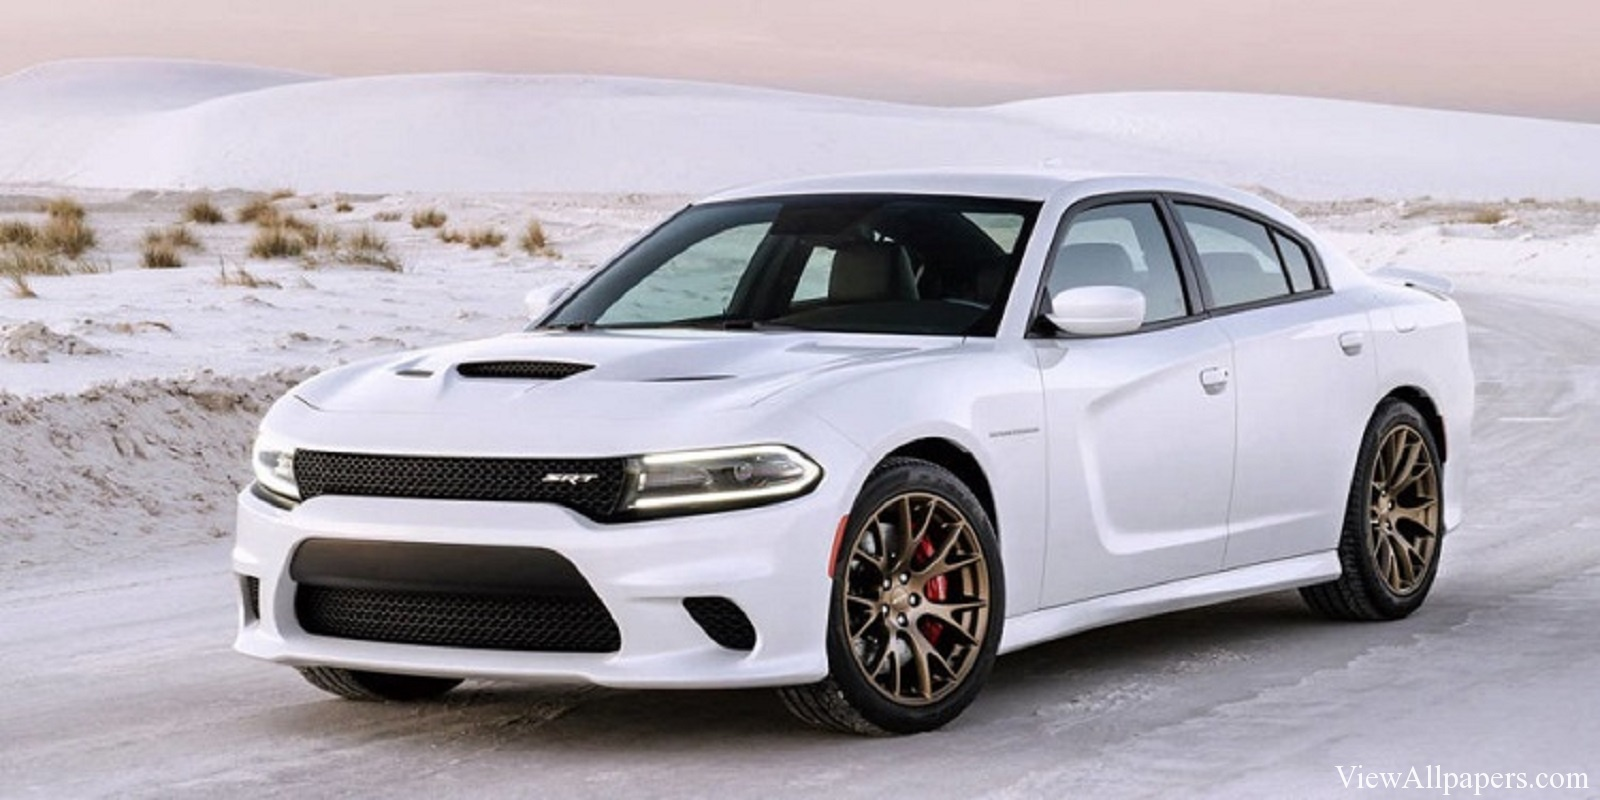 2016 Dodge Charger High Resolution Wallpaper download 2016 Dodge 1600x800